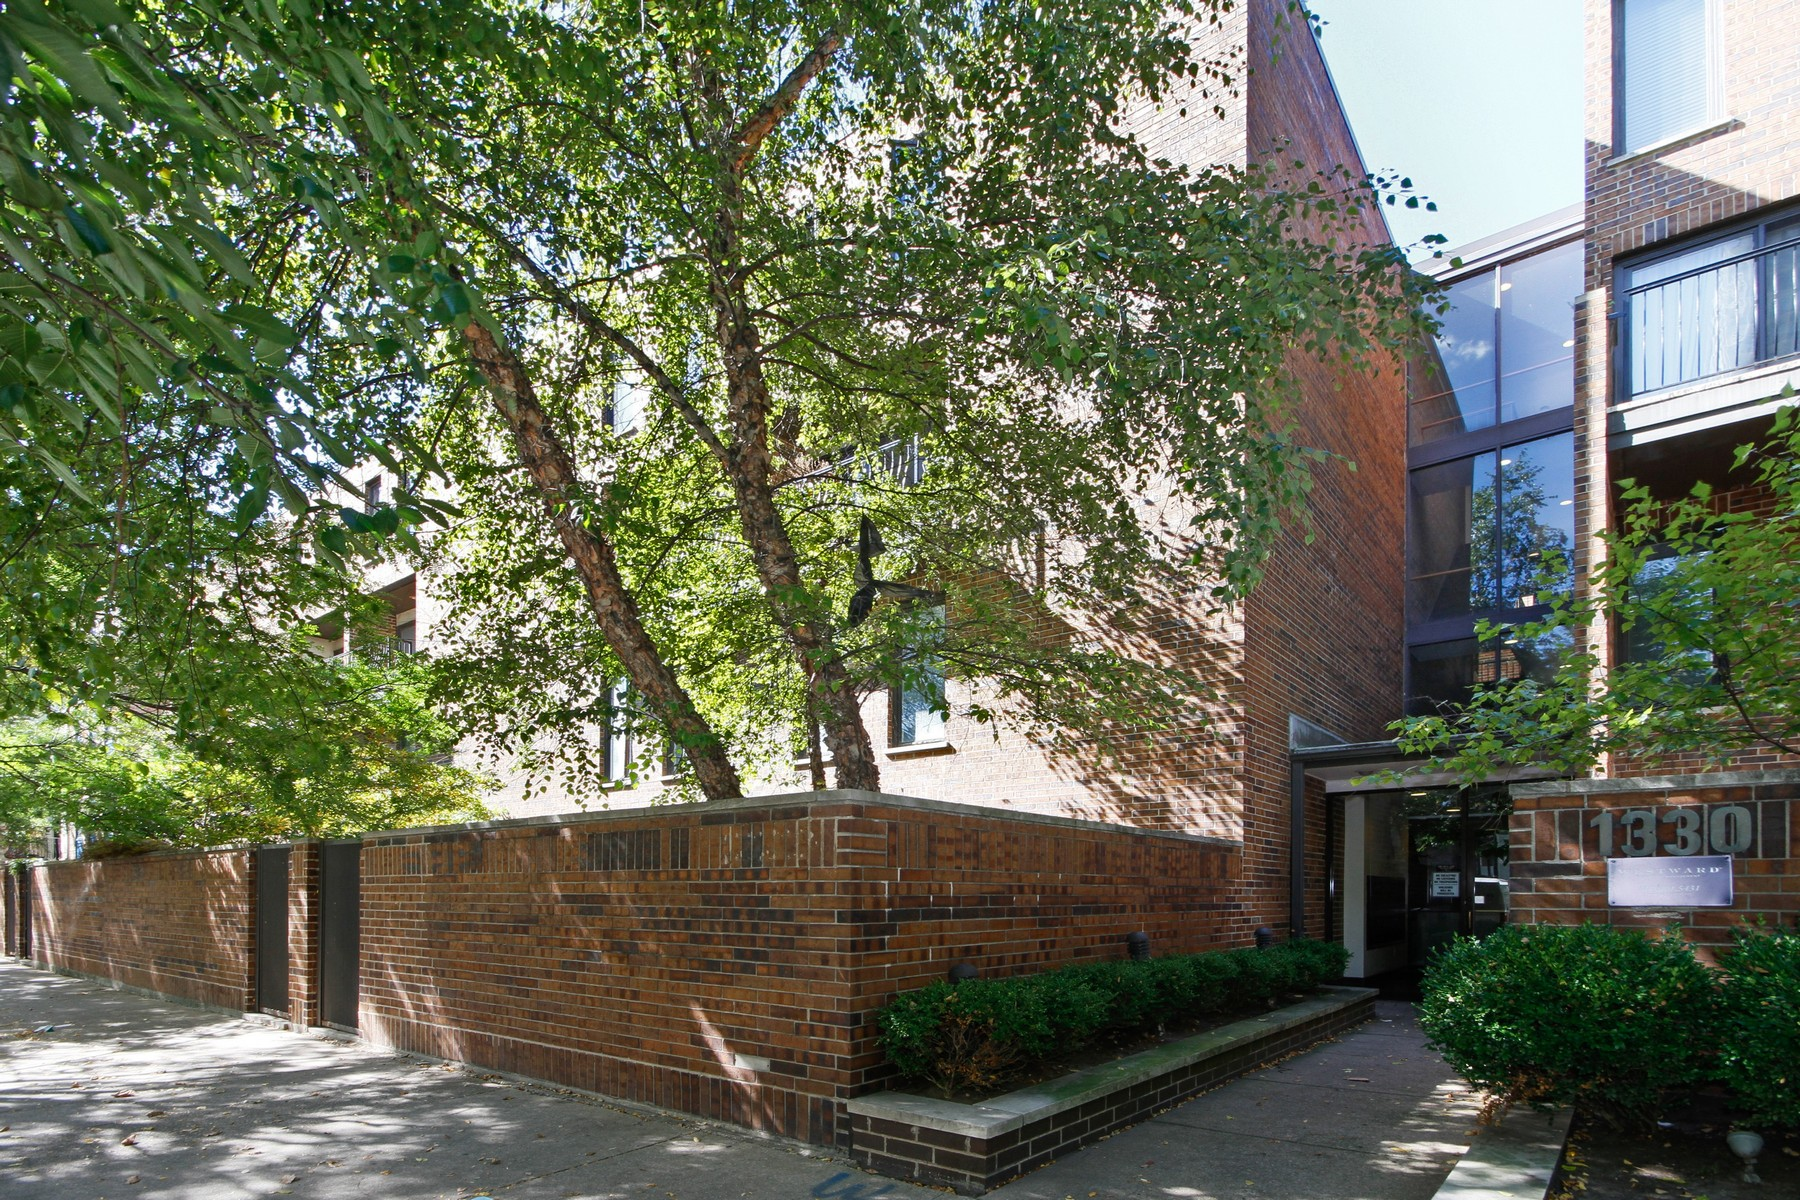 共管物業 為 出售 在 Duplex Lives Like a Single Family Home 1330 N LaSalle Drive Unit 100 Chicago, 伊利諾斯州, 60610 美國